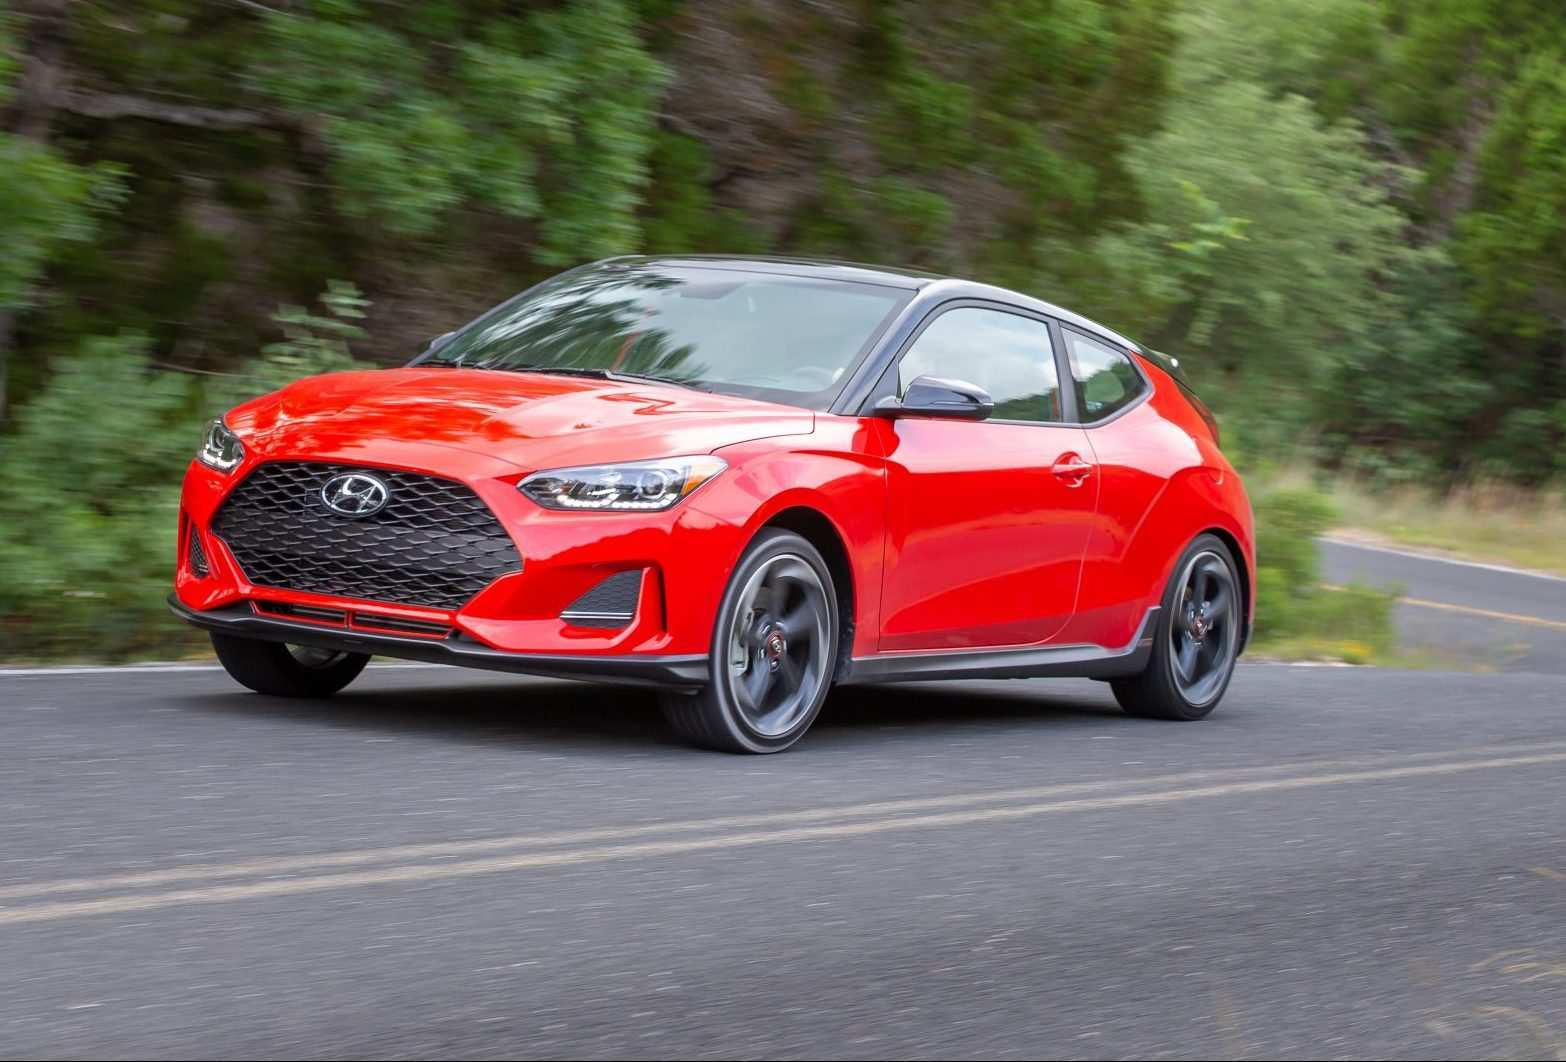 84 A 2019 Hyundai Veloster Review New Model And Performance